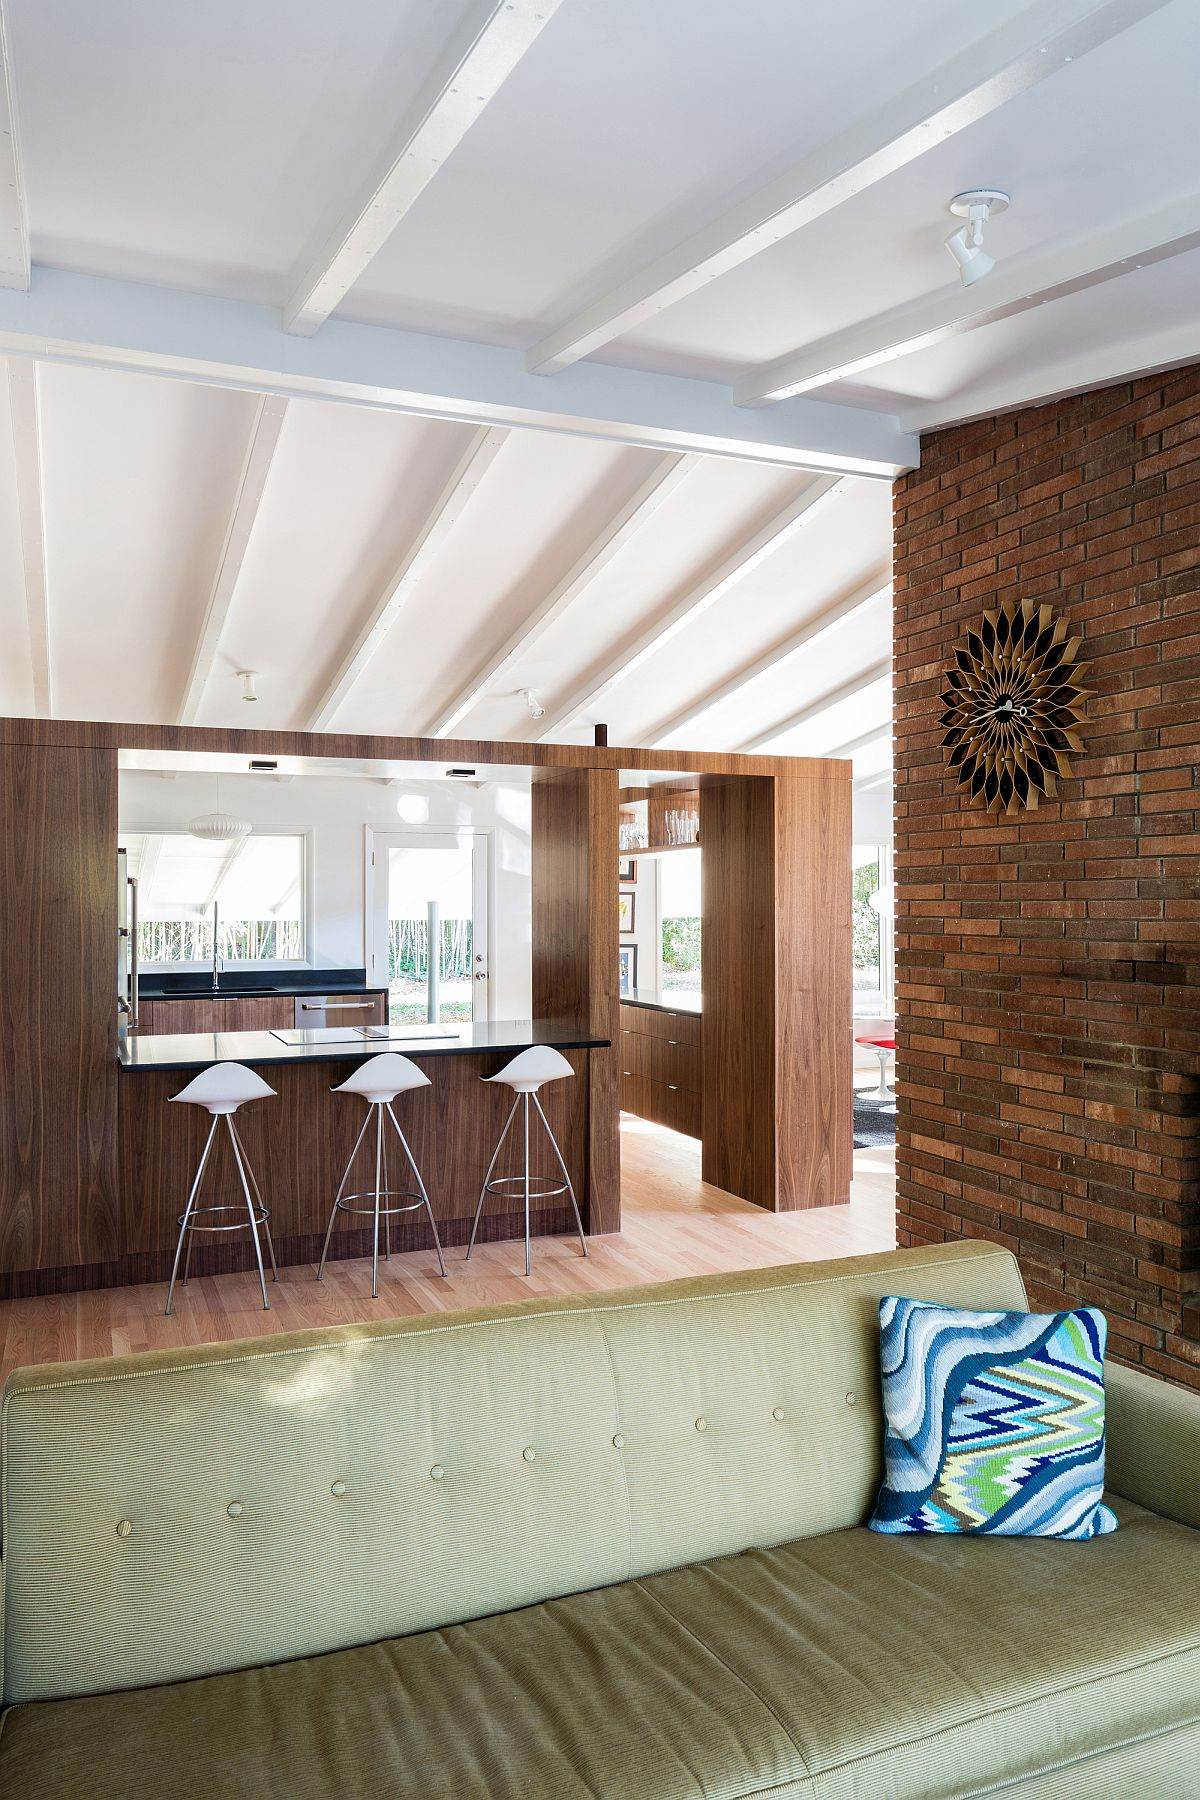 Wooden walls delineate the living area from the kitchen